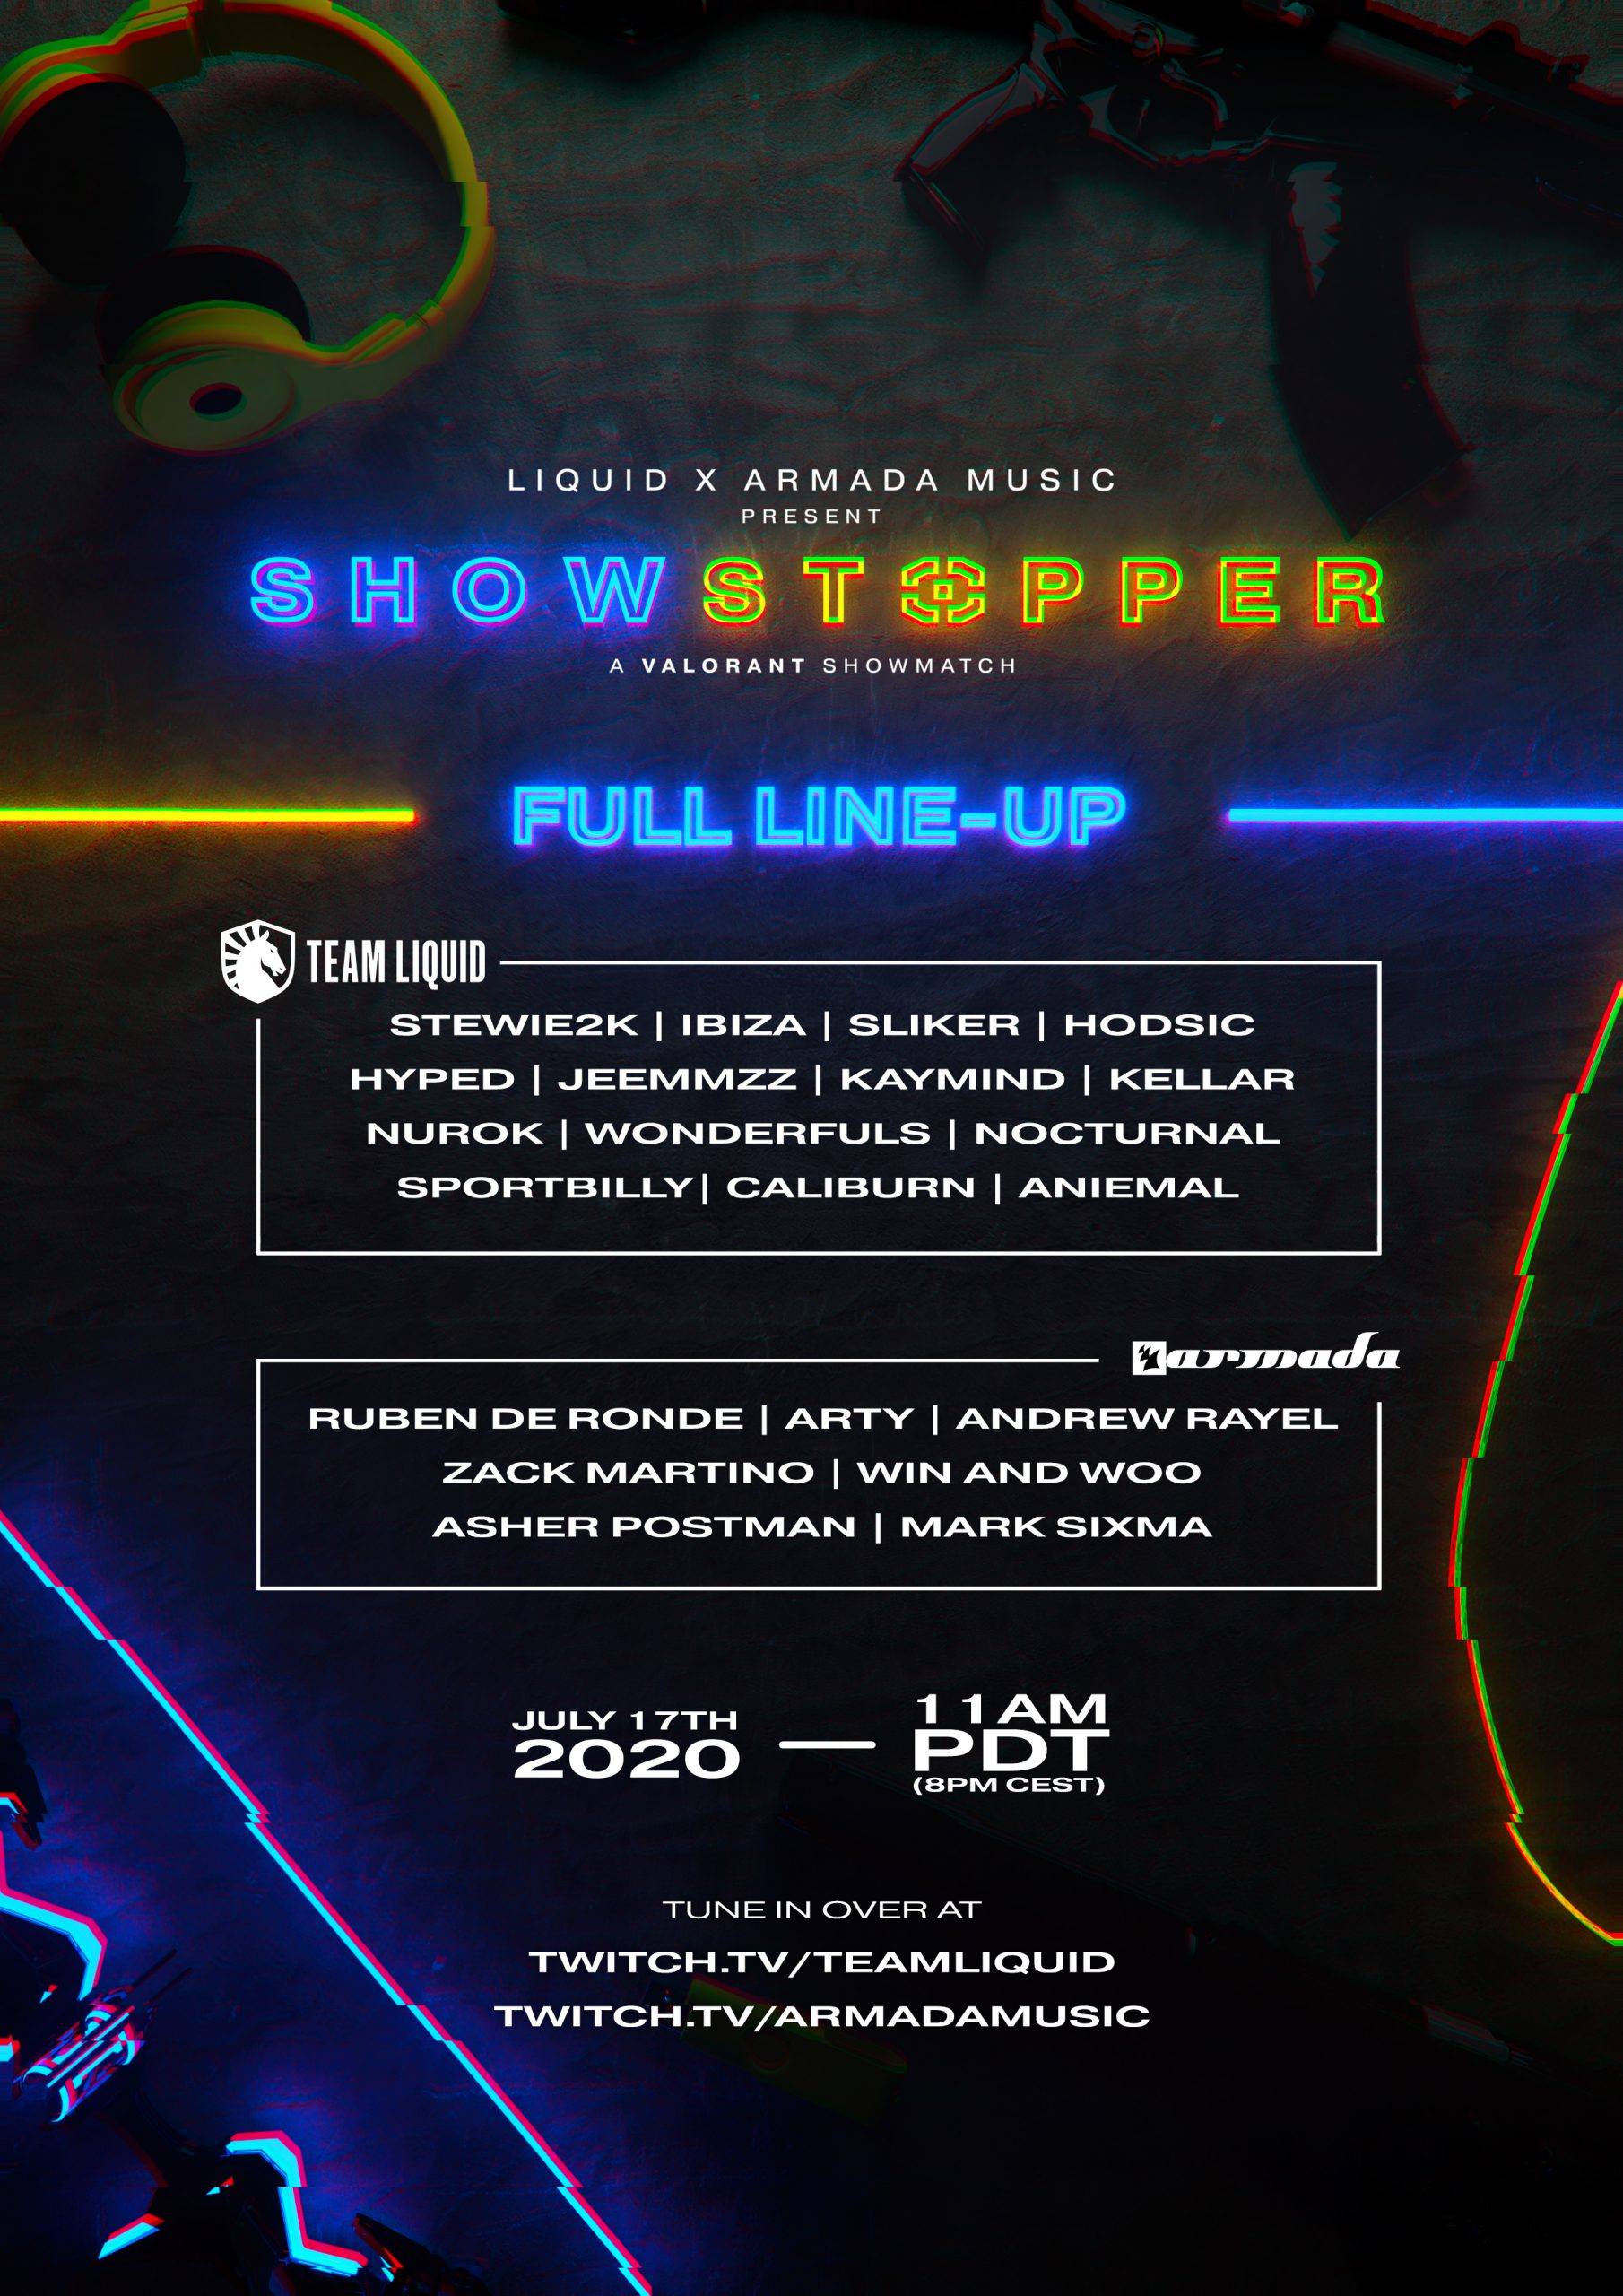 Showstopper Lineup Poster